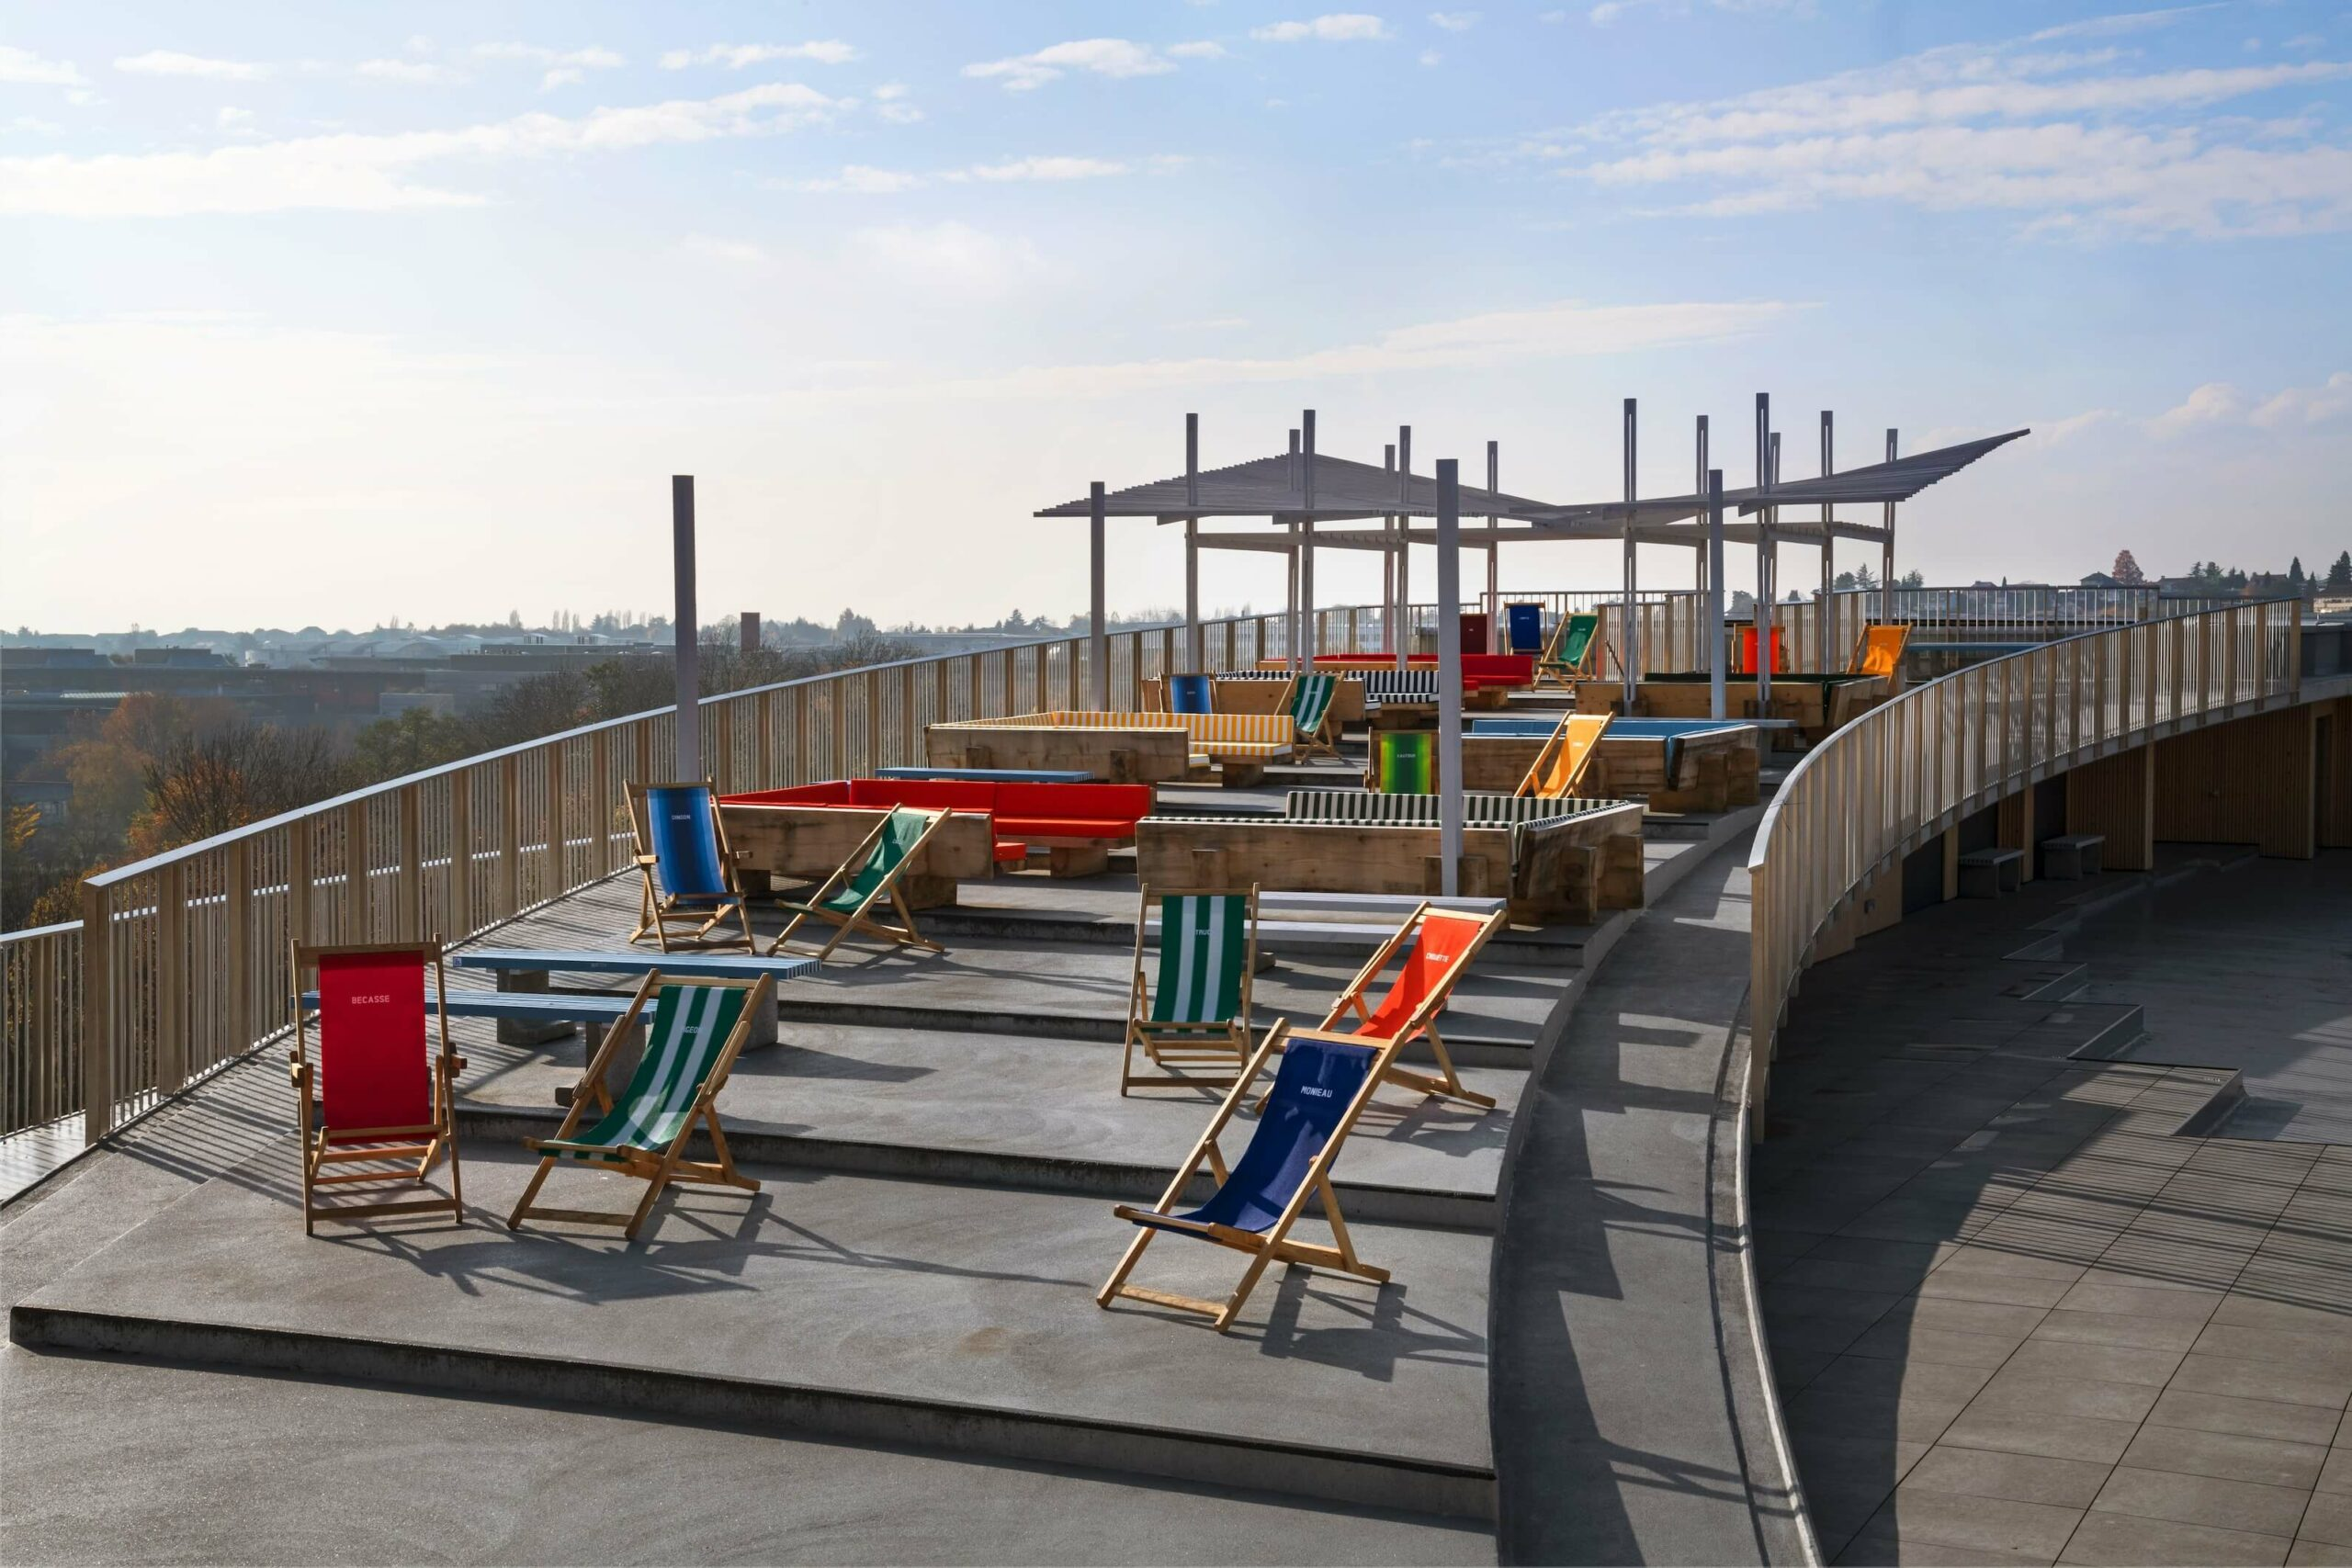 the rooftop is designed to be a bar with an architecture pergola